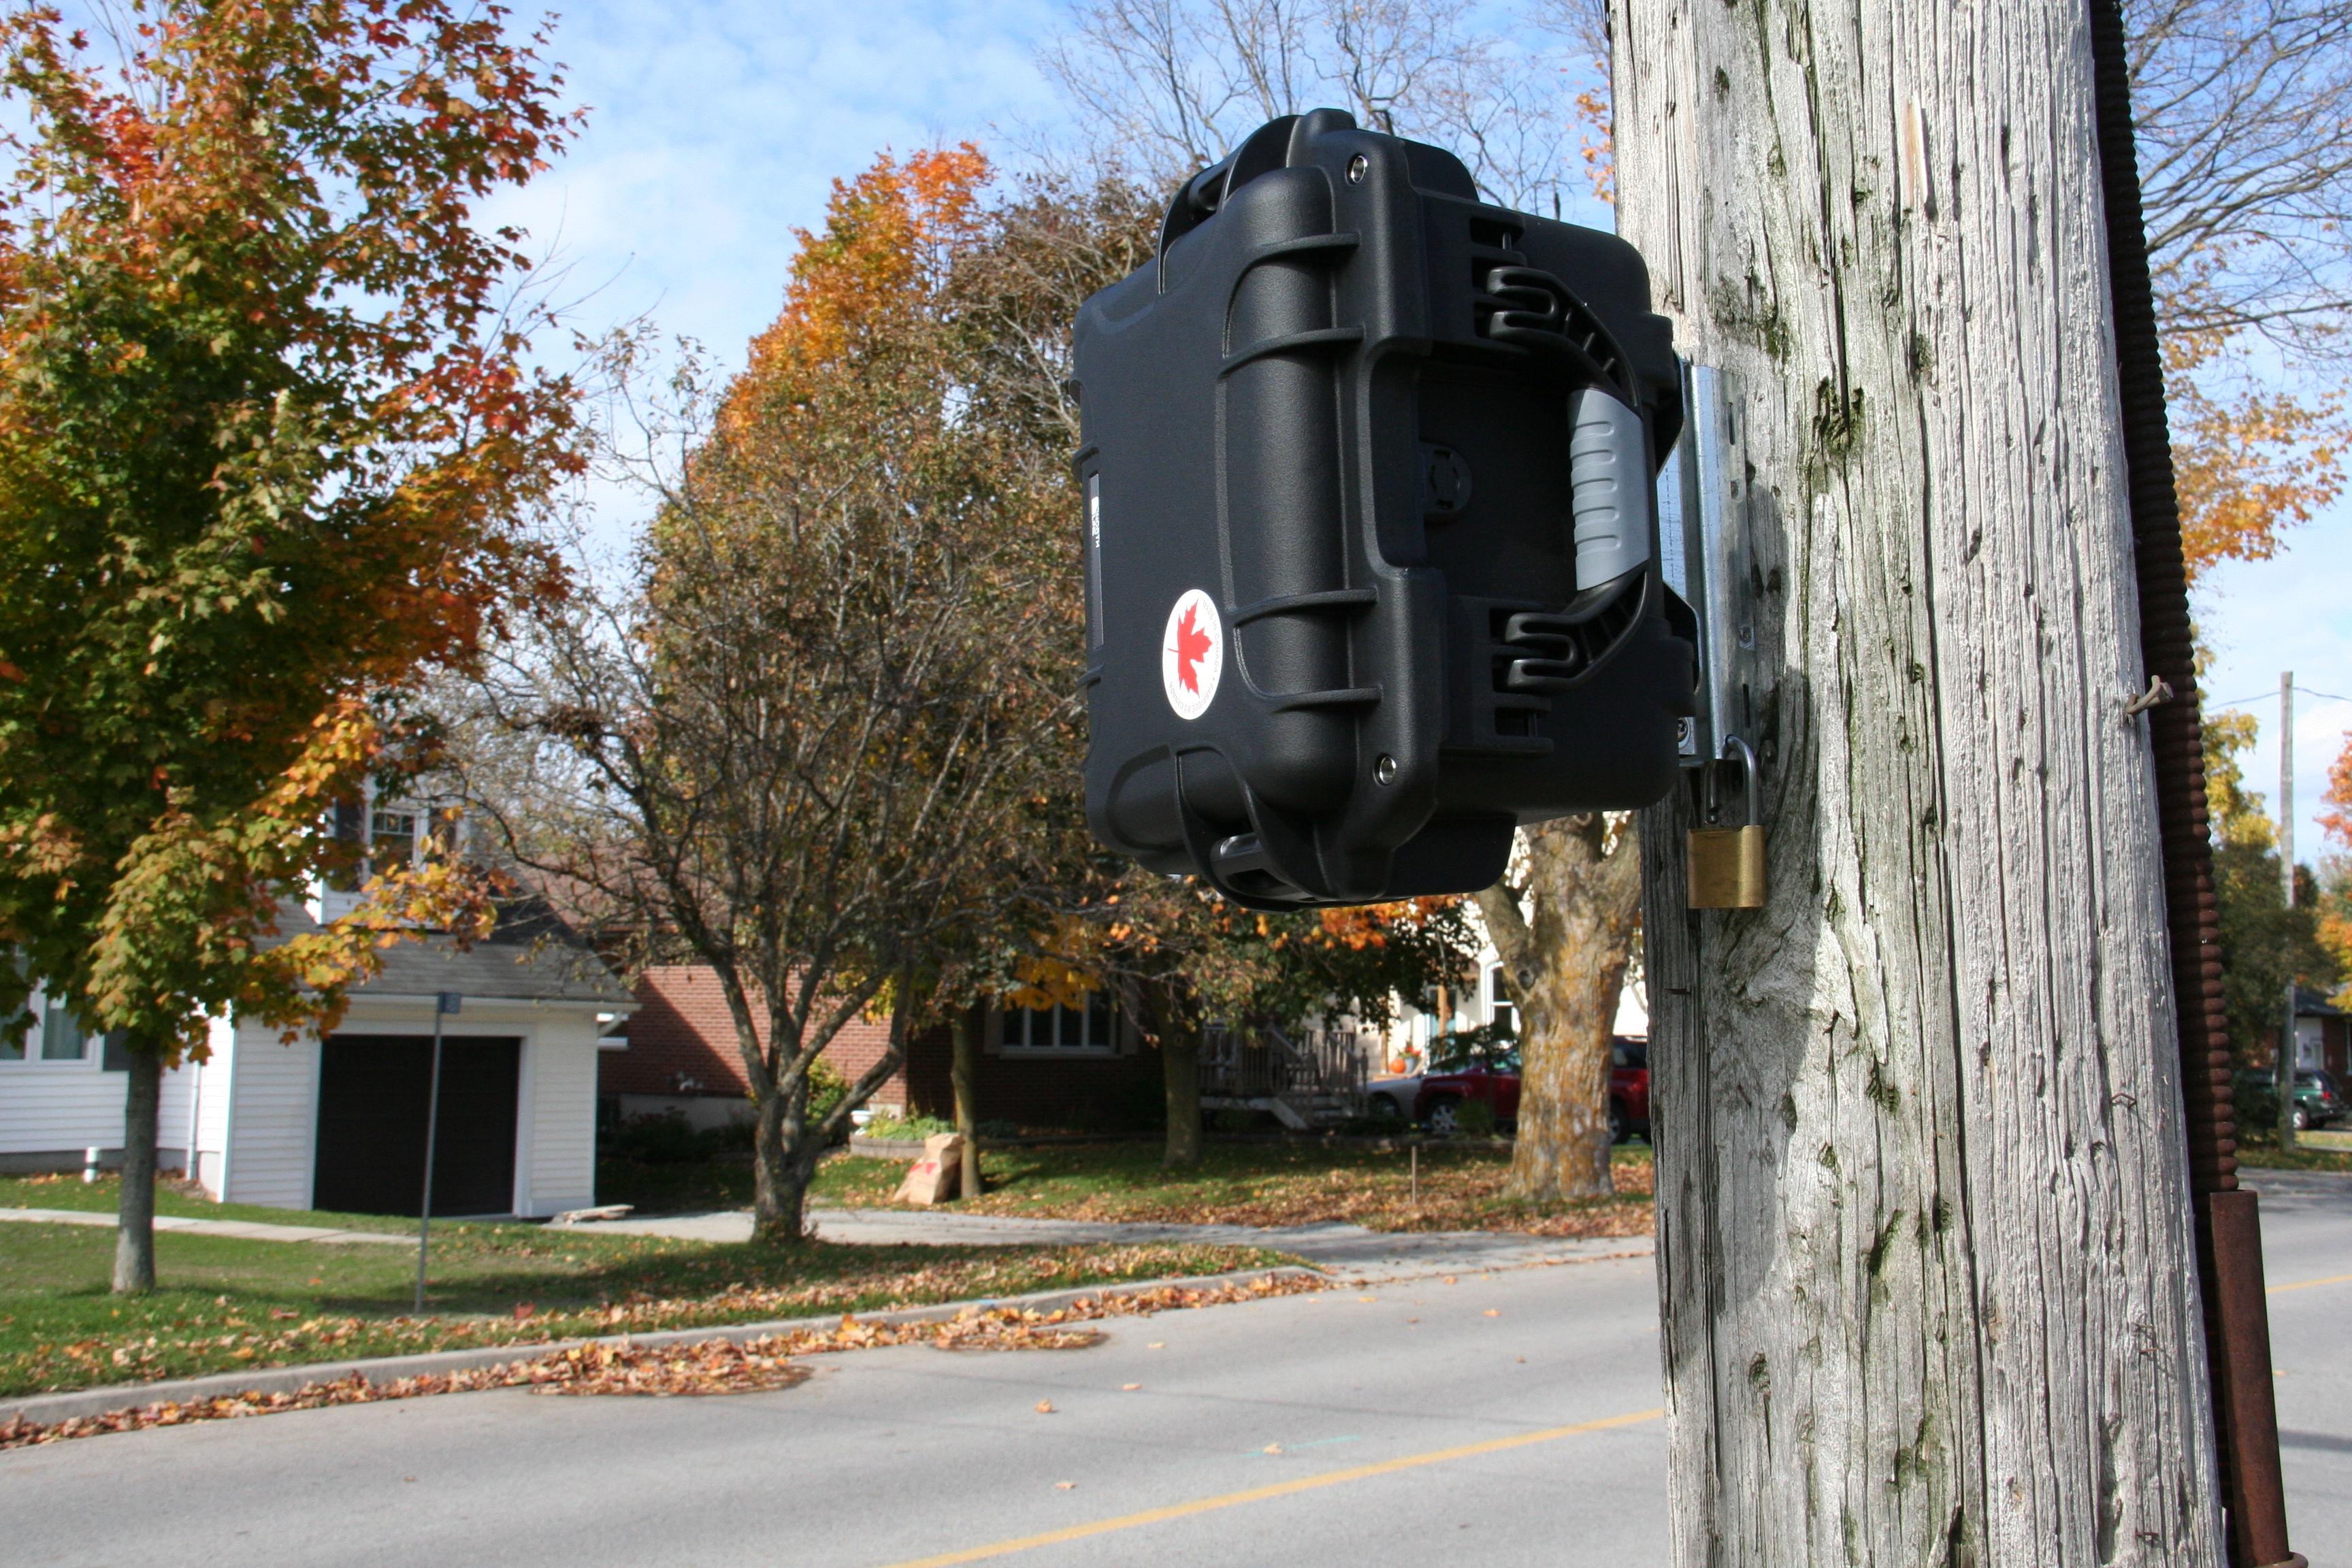 Black CAT radar secured and locked to utility pole on Old Simcoe Rd., Port Perry, Ontario